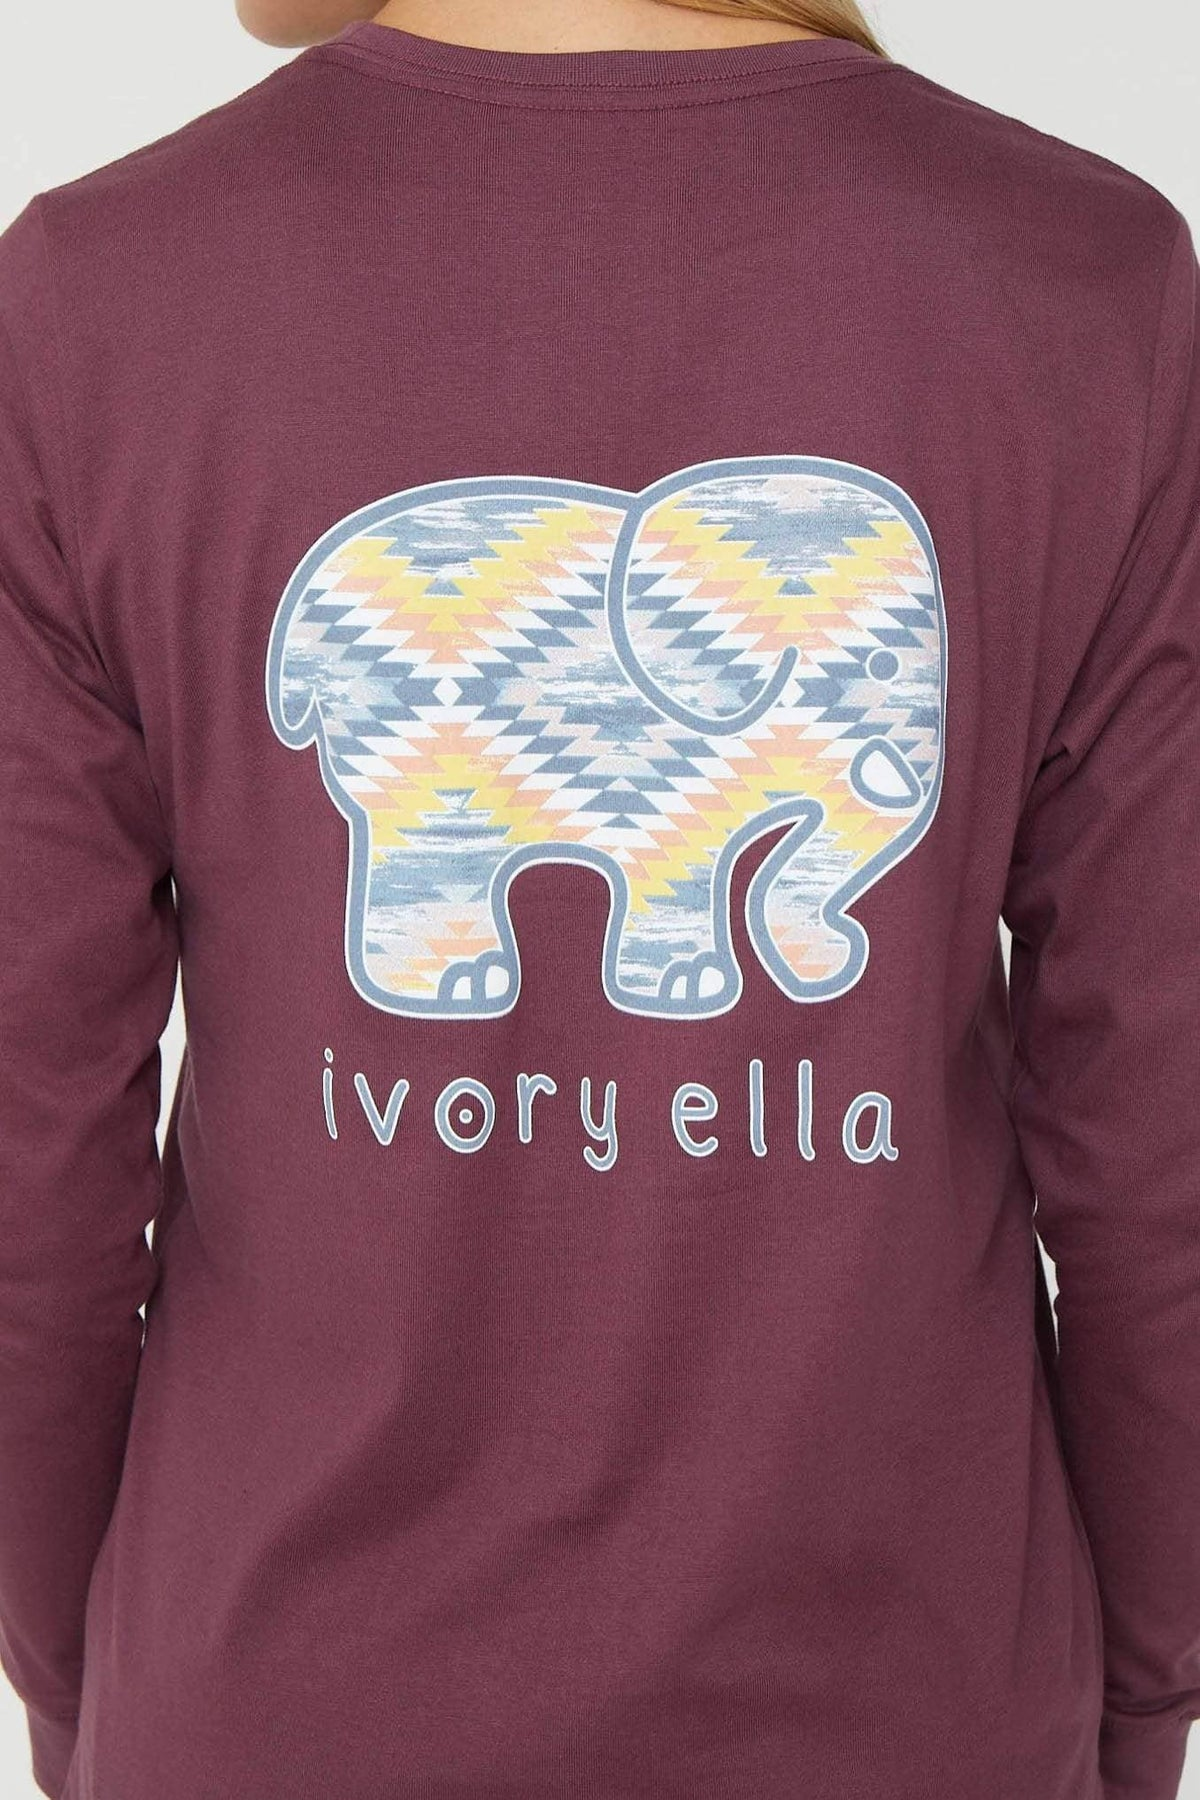 Ivory Ella Women's Long Sleeve Shirts Eggplant Dream Catcher Long Sleeve Ella Tee